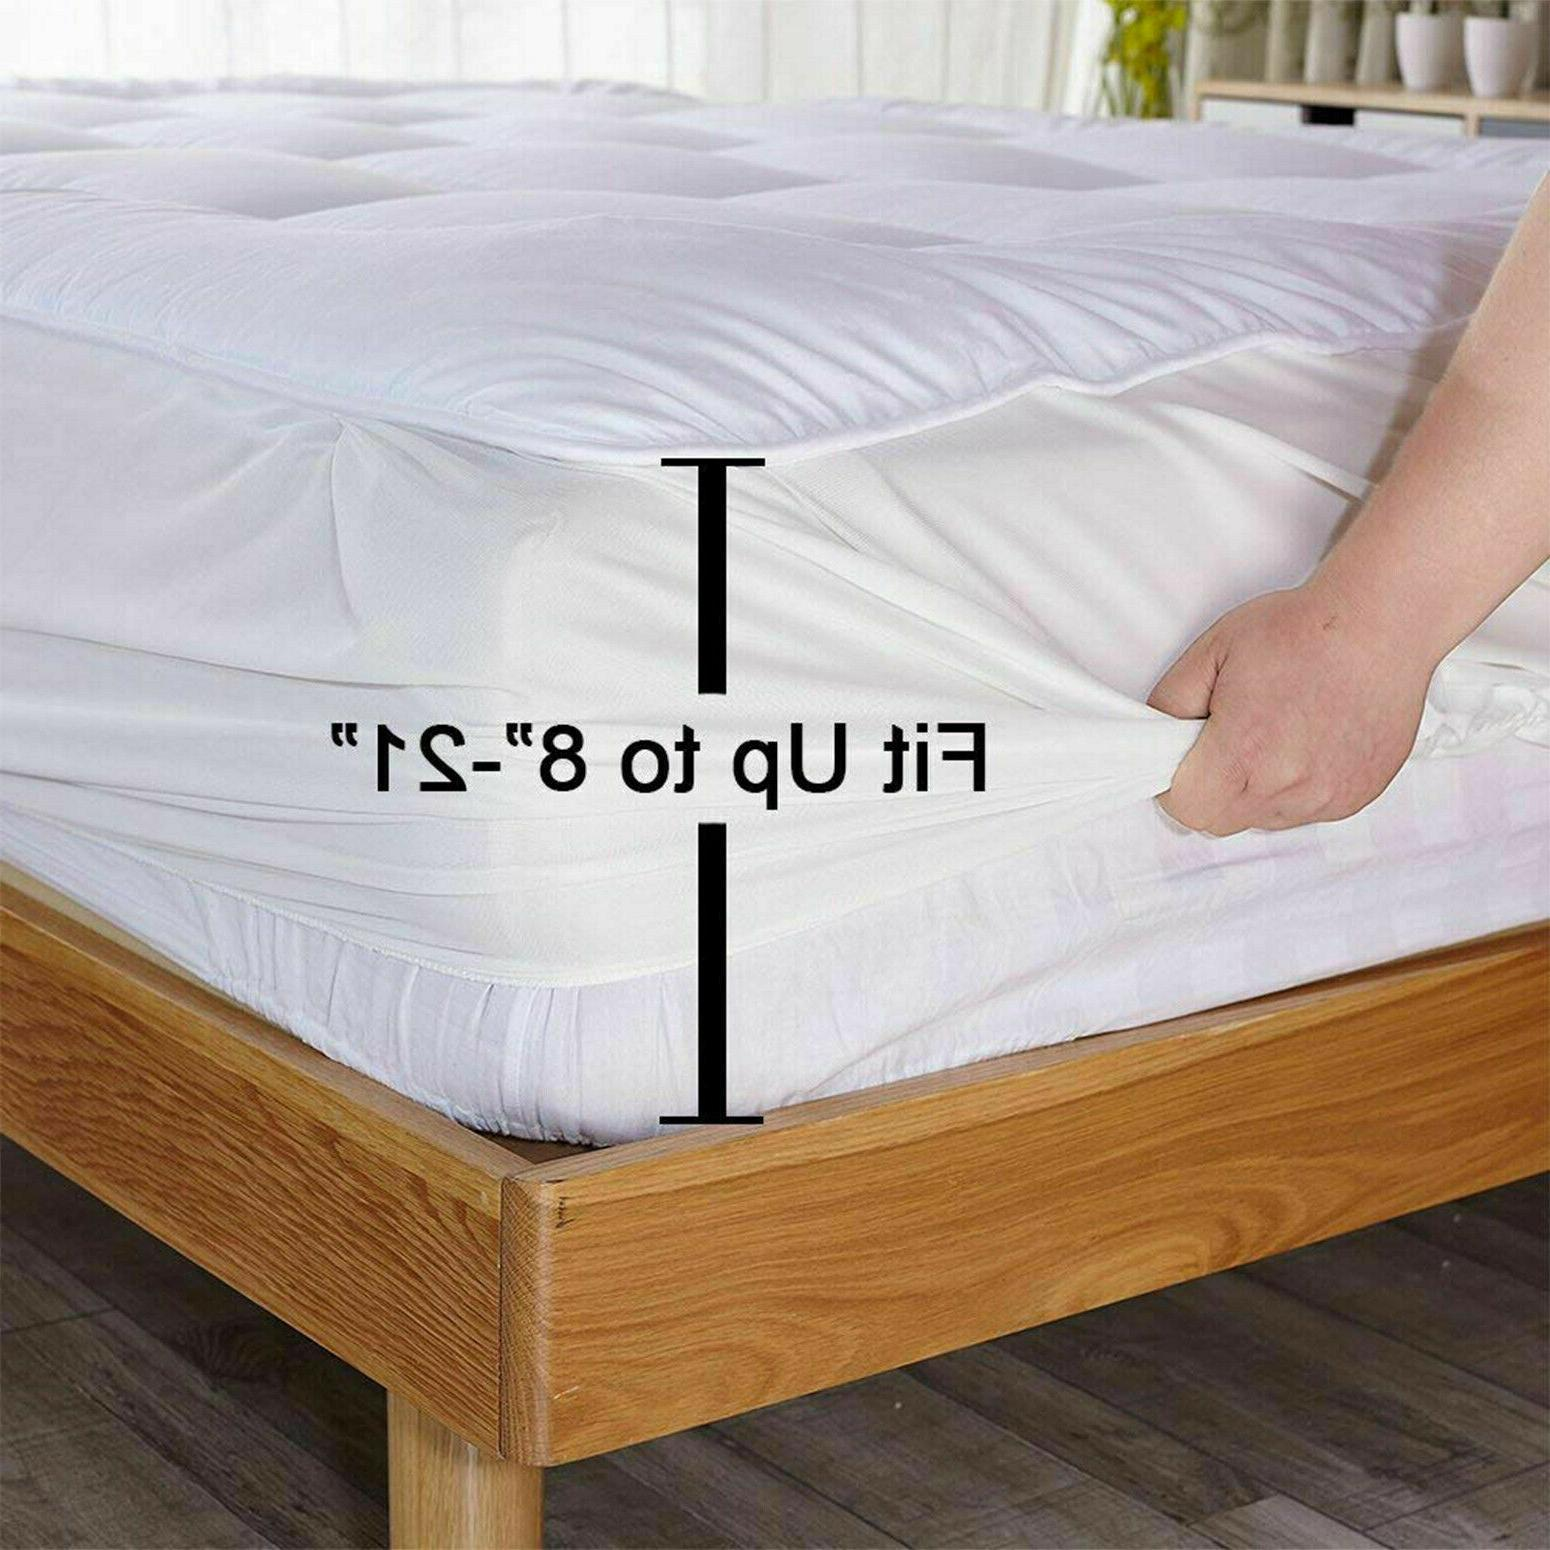 Queen Size Pad Cover Pillow Luxury Bed